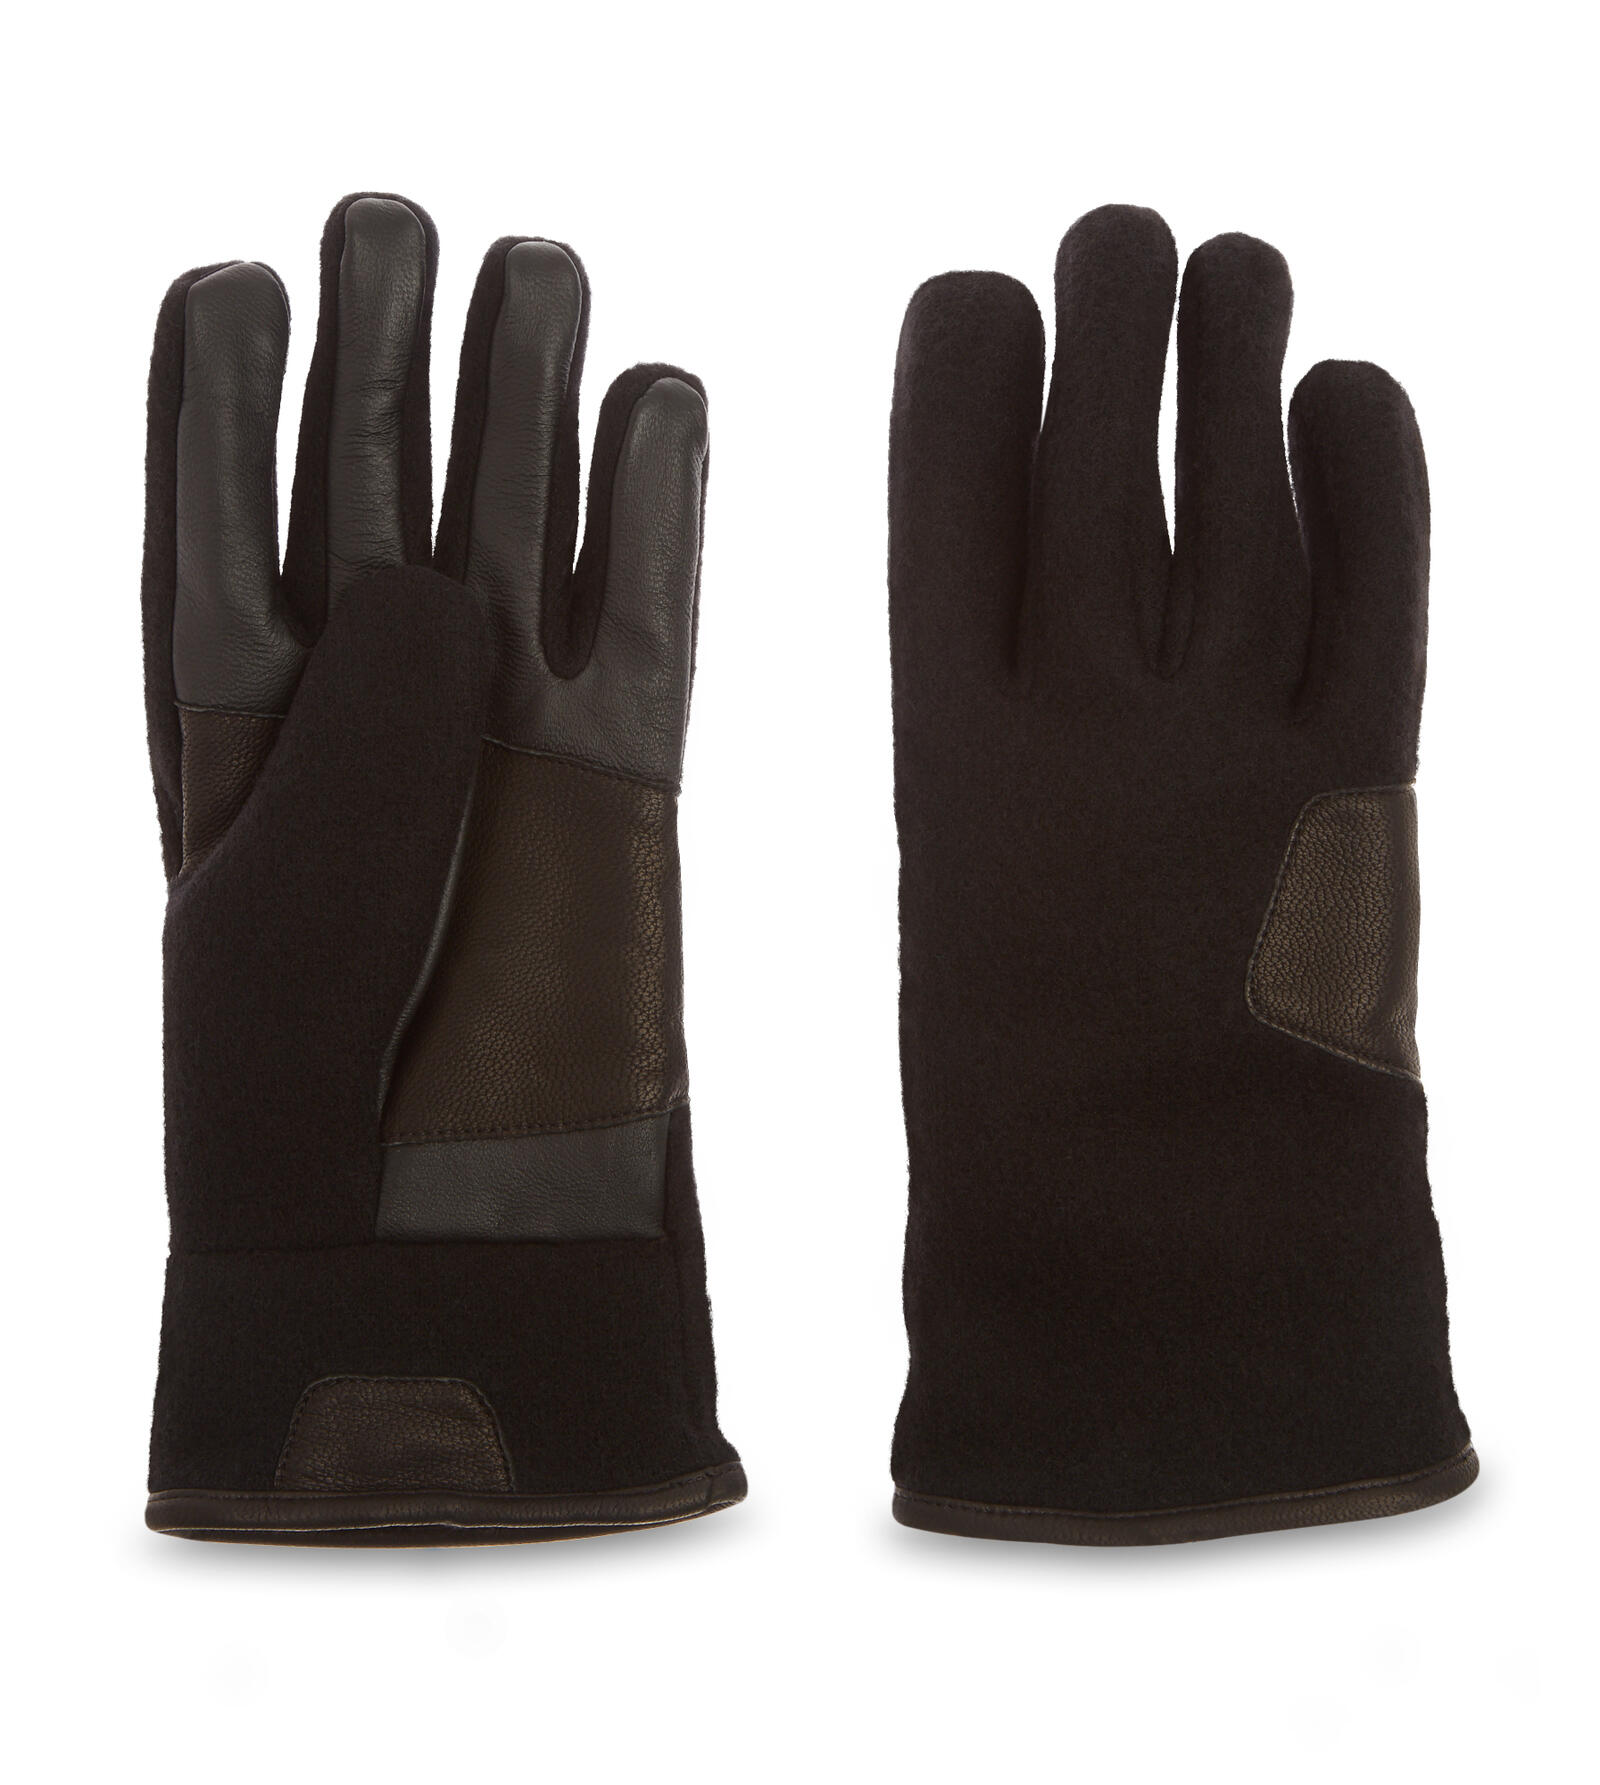 Fabric and Leather Gants